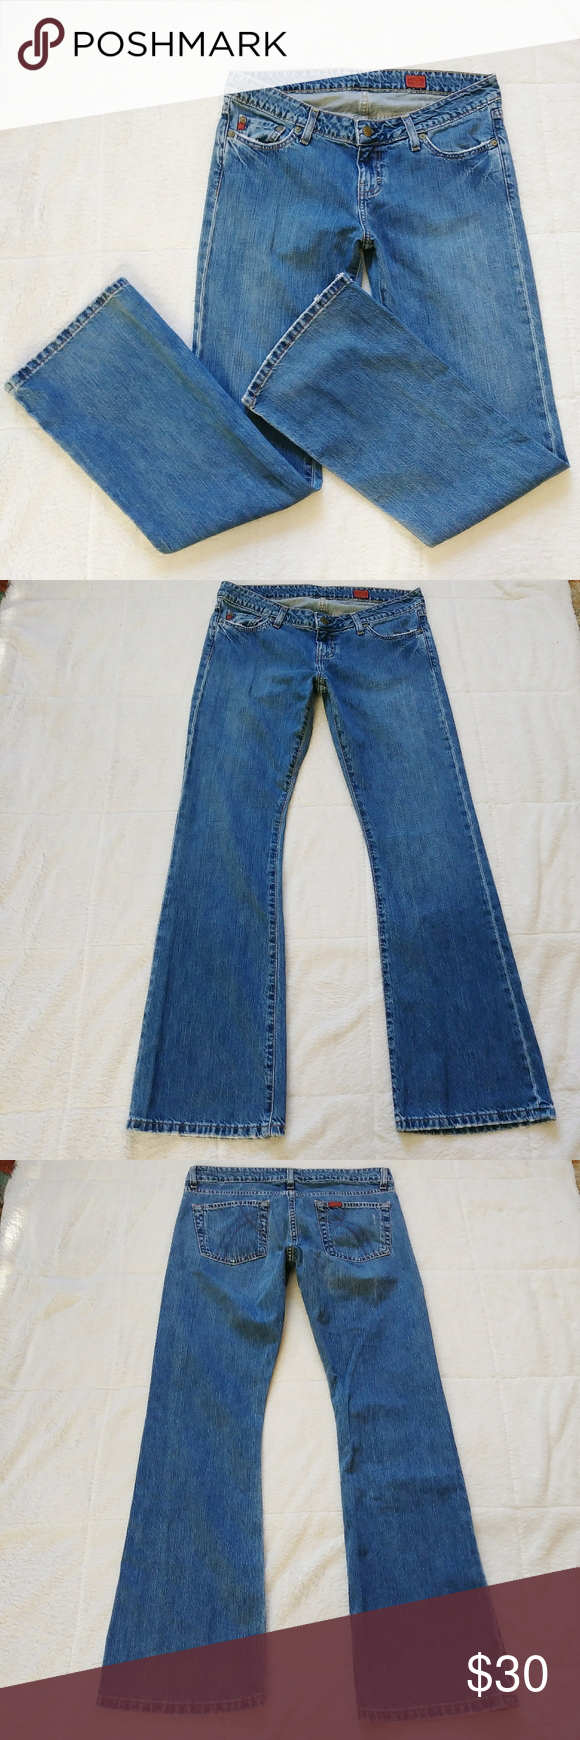 Fossil Starfire Blue Ribbon Jeans Fossil brand Preowned Starfire blue ribbon Bootcut/baby flare style Button & zip closure Medium/dark wash Approximate Measurements: Top laid flat- 17in Rise- 8in Inseam- 32in  0326 L Fossil Jeans